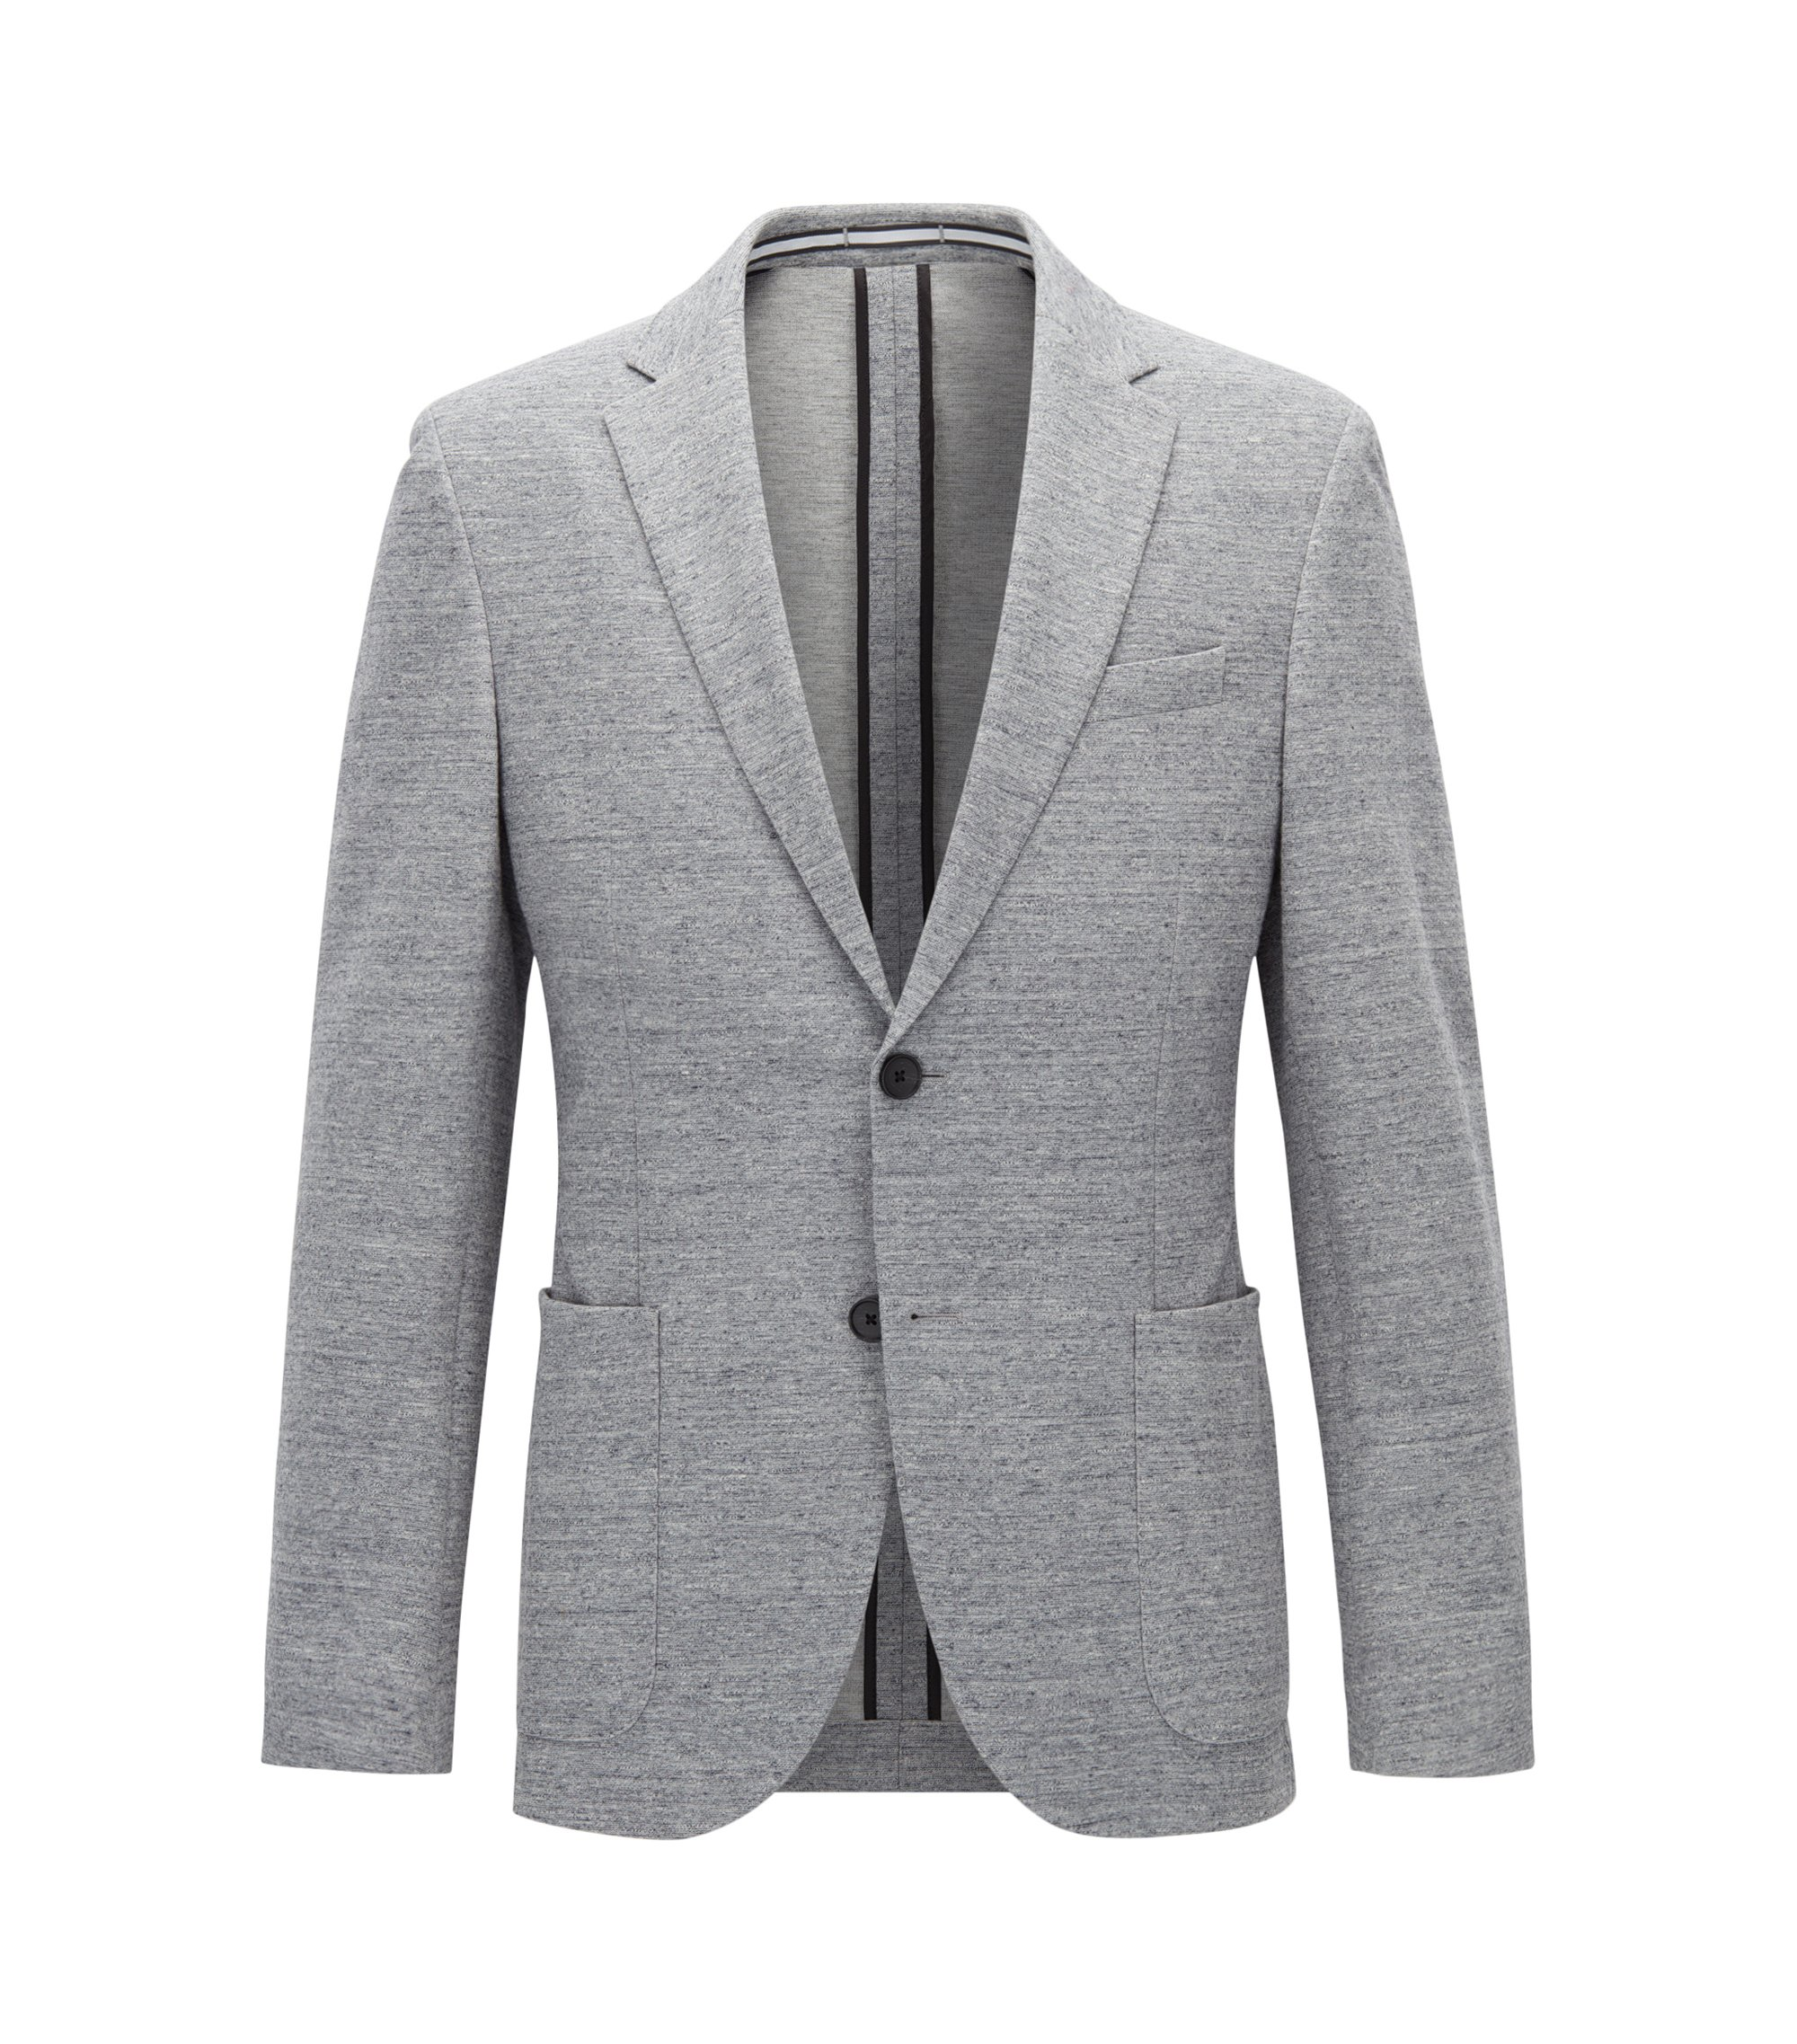 Jersey blend Tweed Sport Coat, Slim Fit | Newon J, Open Grey